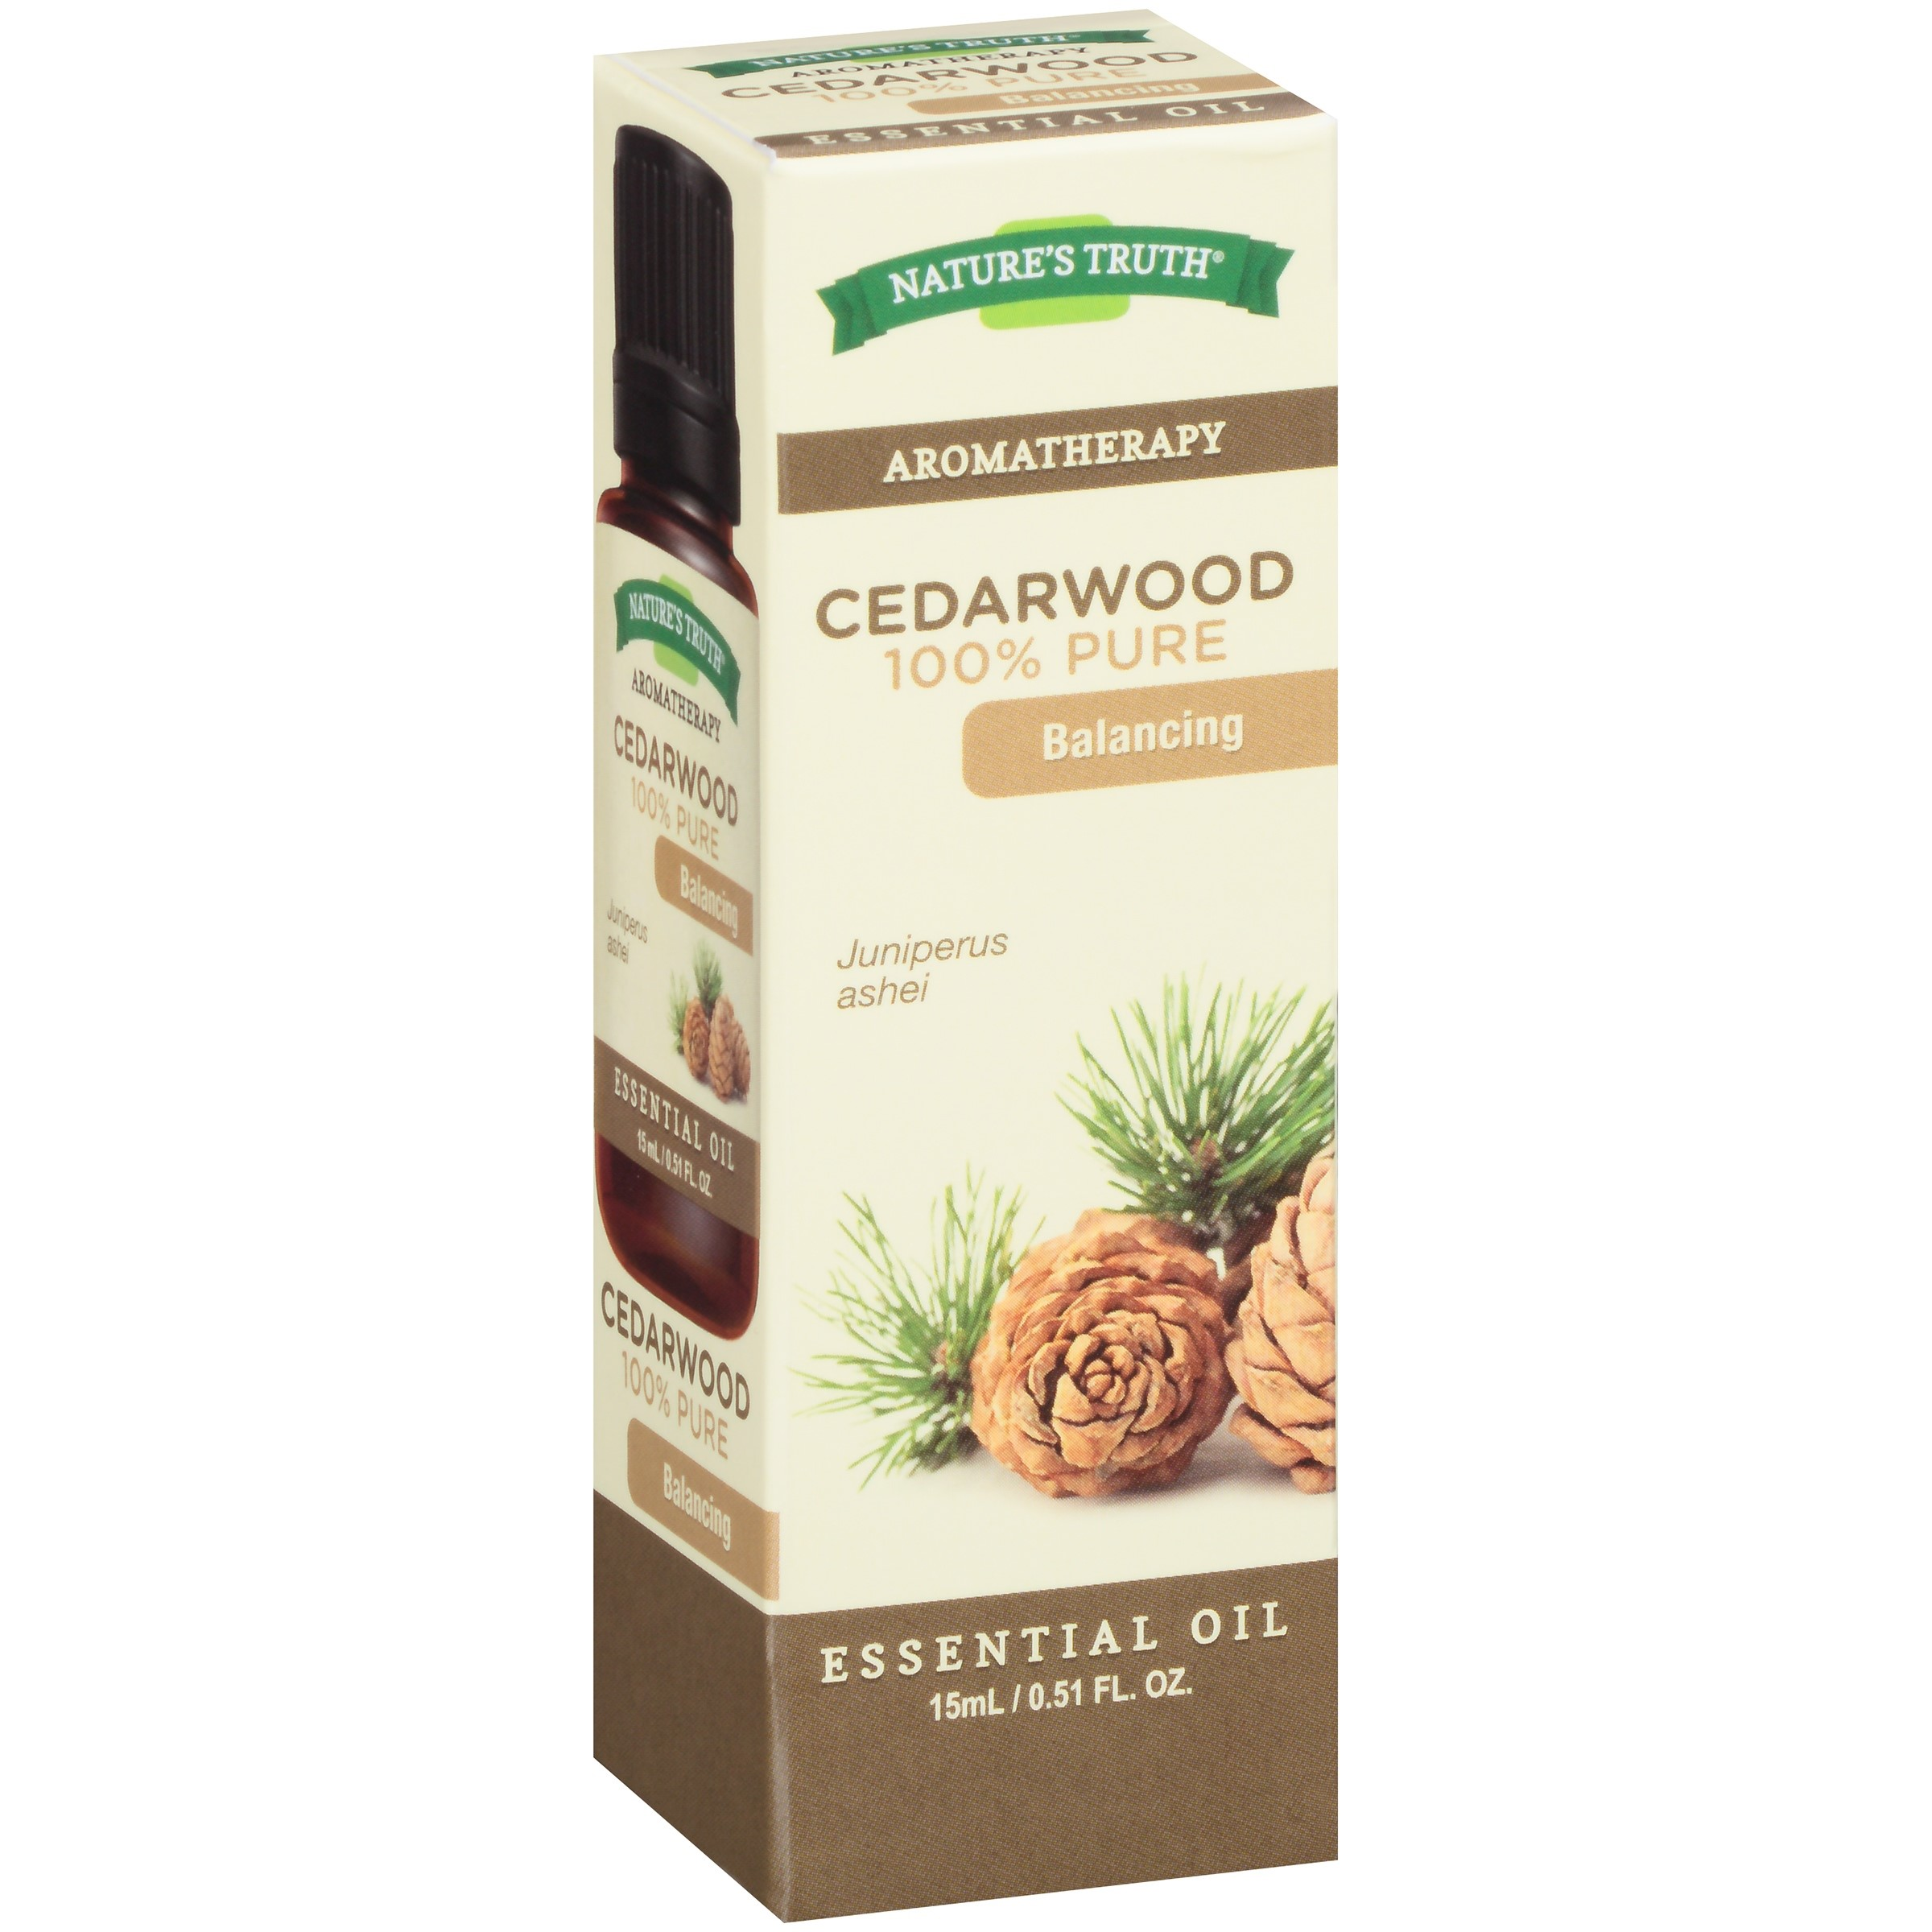 Nature's Truth Aromatherapy Cedarwood Essential Oil, 0.51 Fl Oz